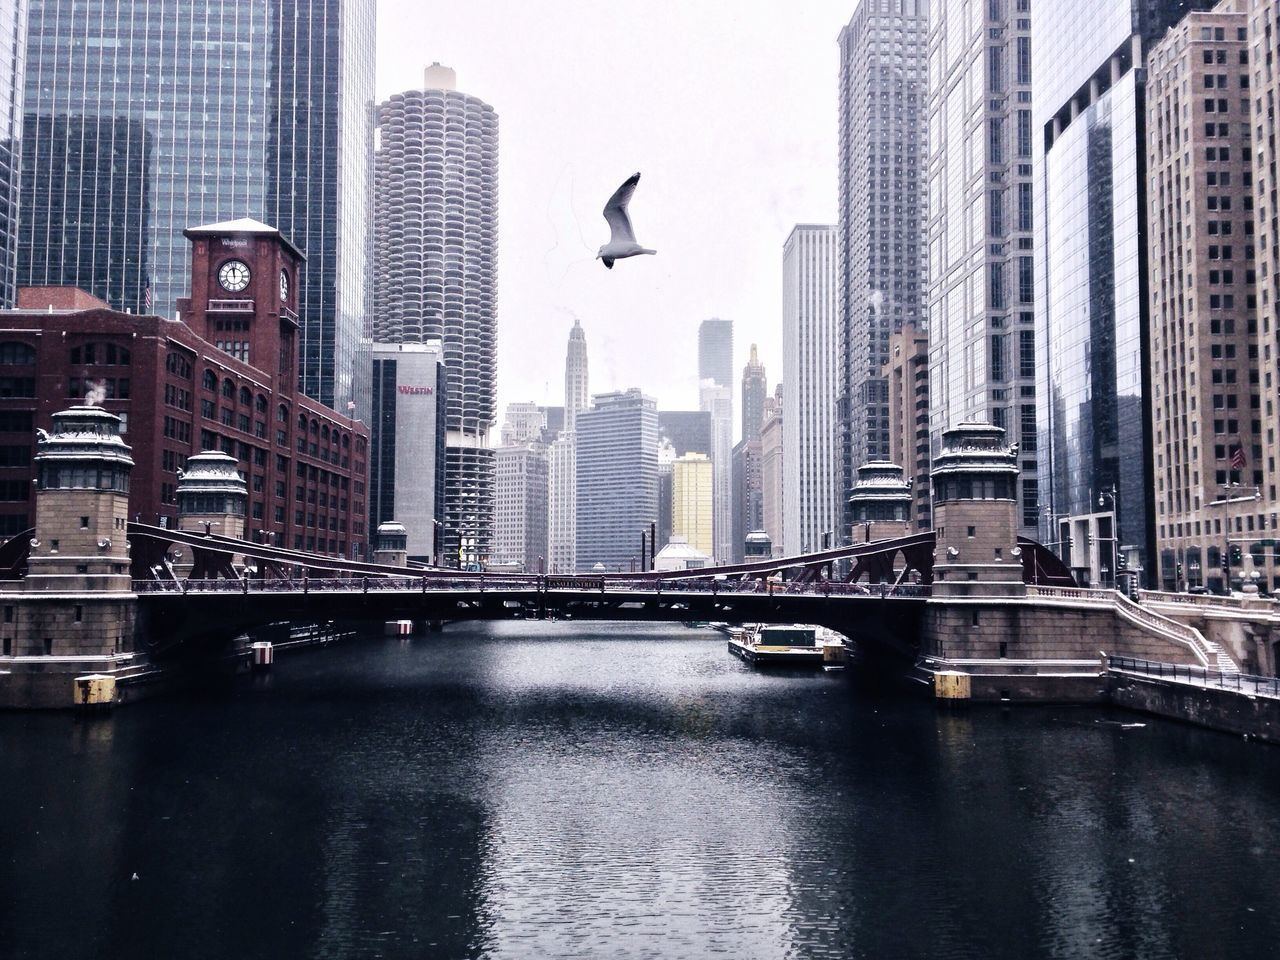 Winter Chicago Chicago River AMPt_community EyeEm Best Shots Architecture Great Views Wintertime